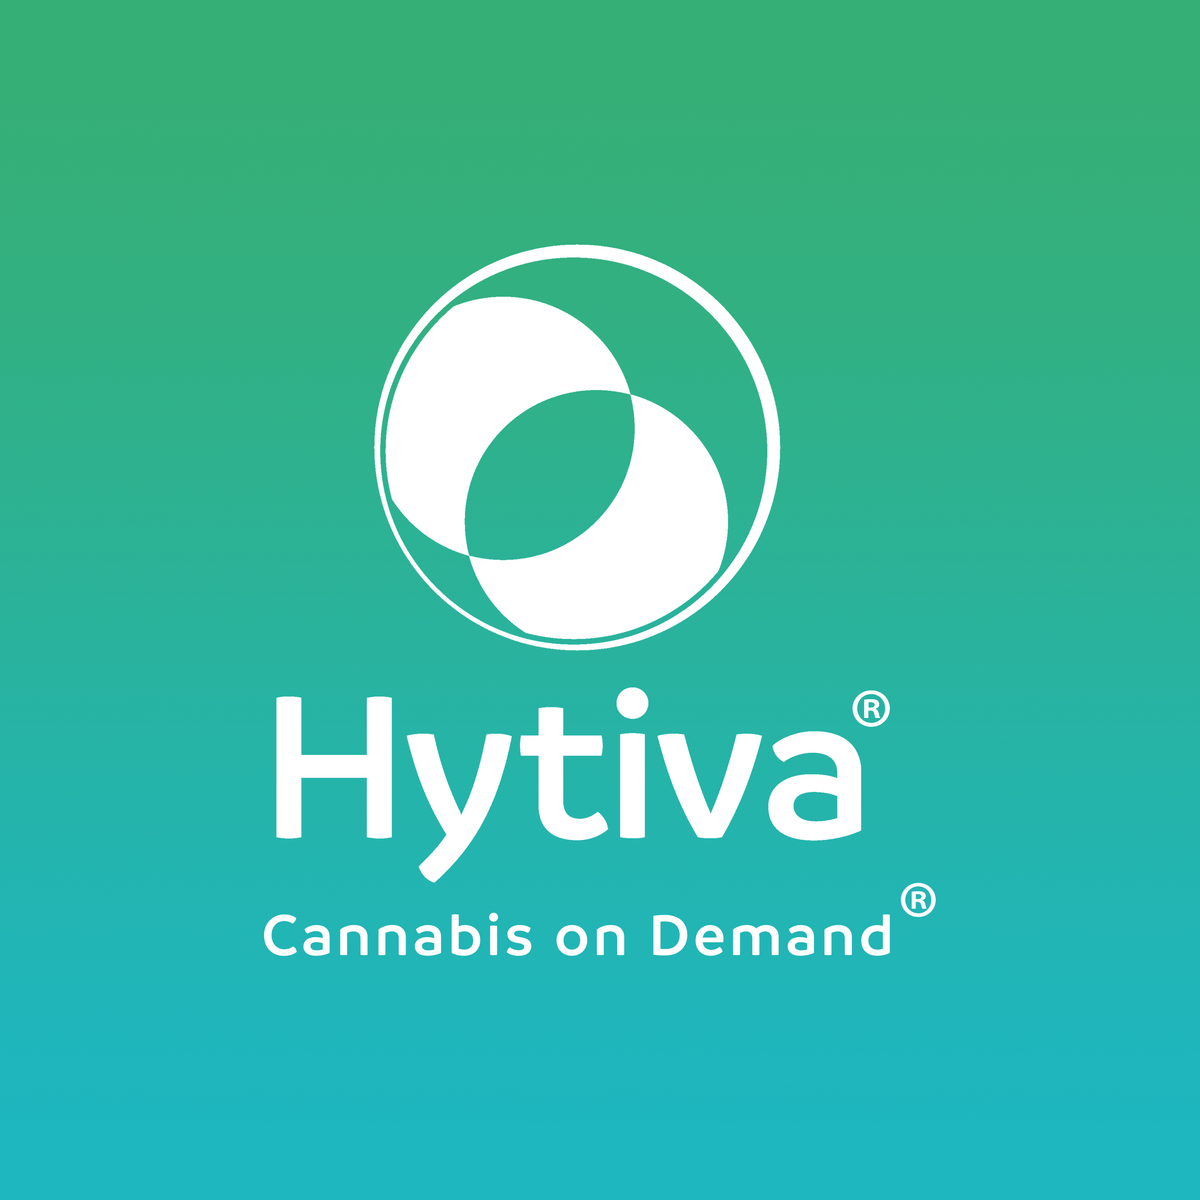 Hytiva : Learn About Cannabis, Find Strains, and Order Online